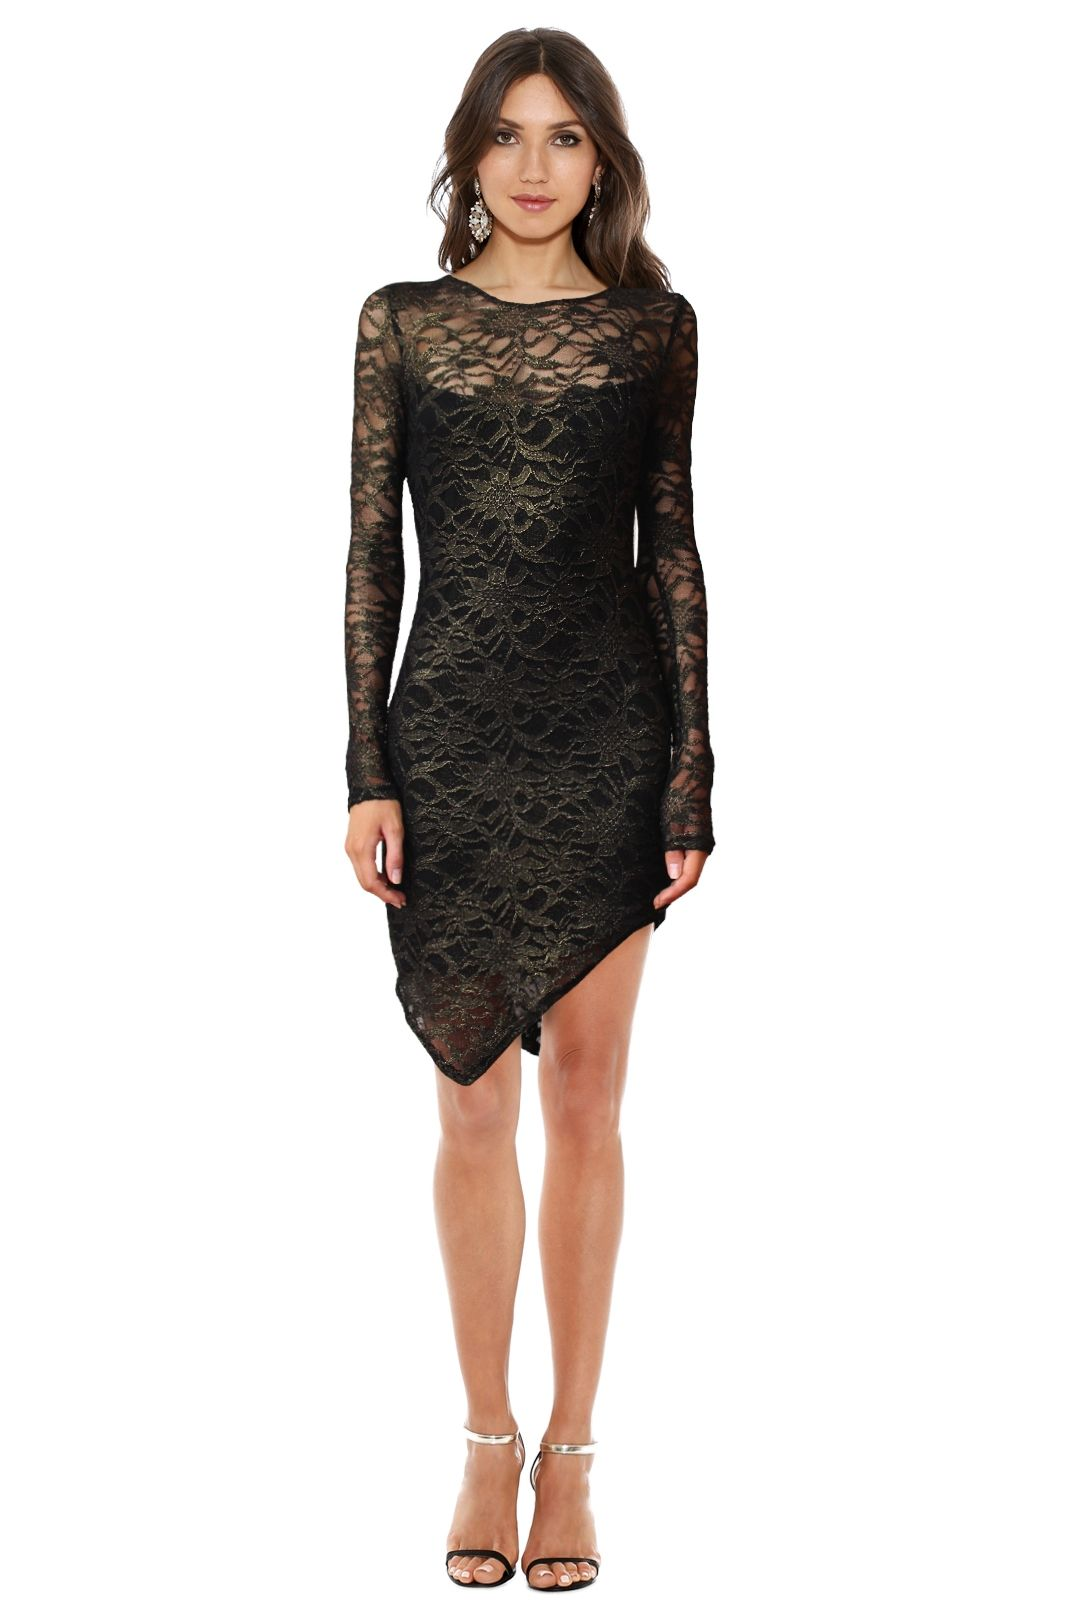 Backstage - Metallic Lace Dress - Black - Front